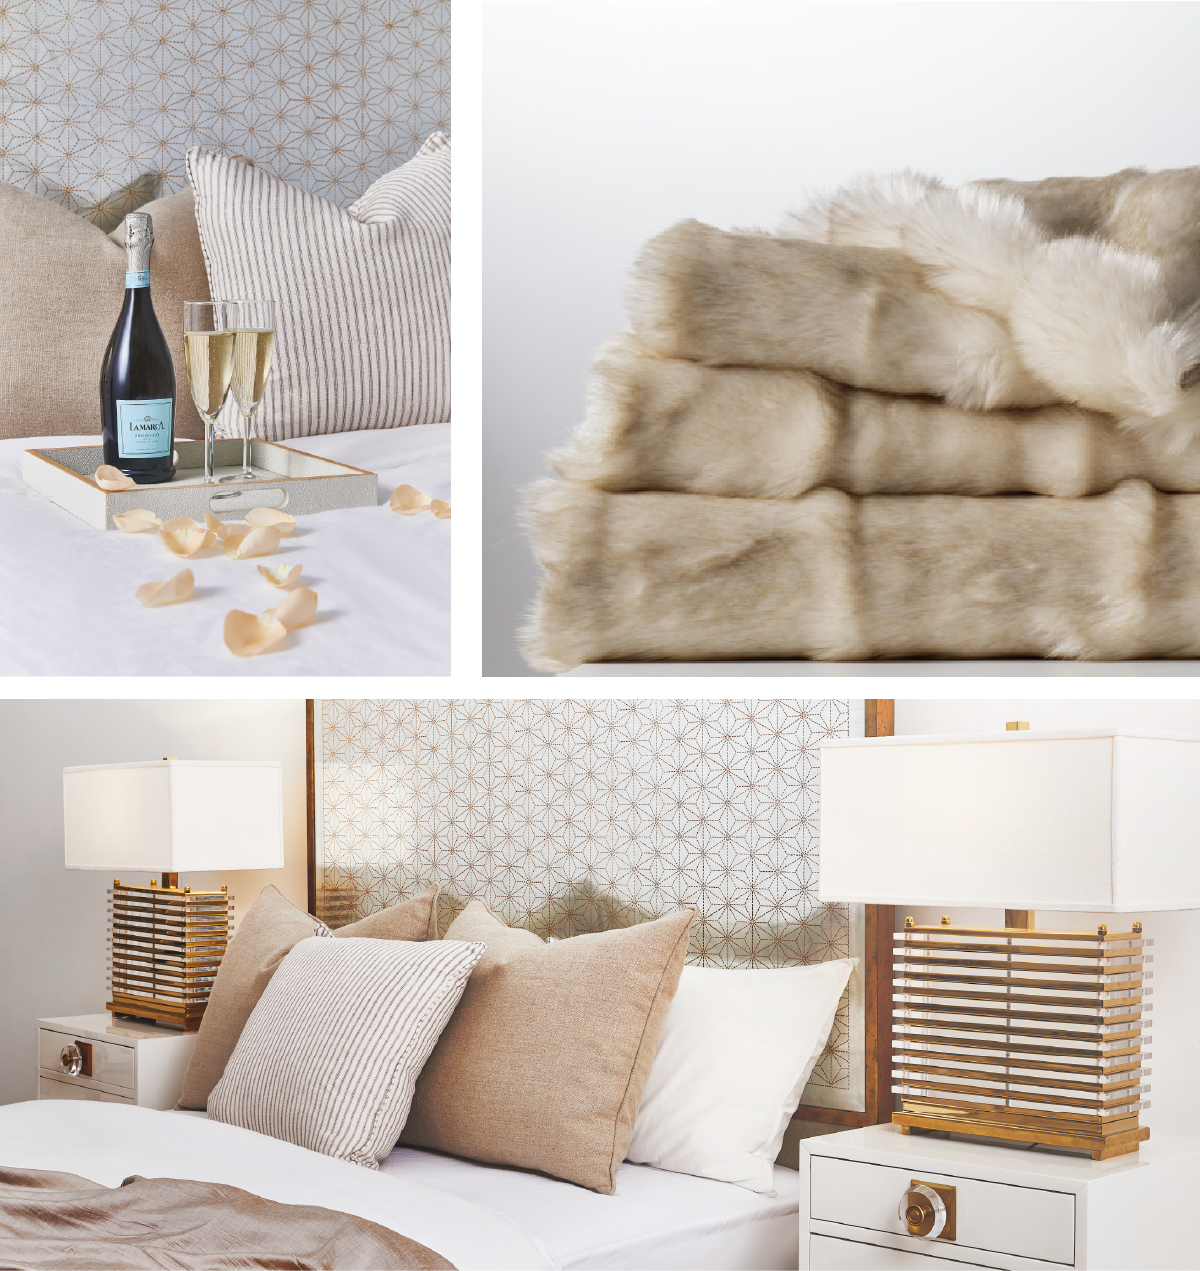 Gilded Star Bed and Faux Fur Throw in Warm Ivory